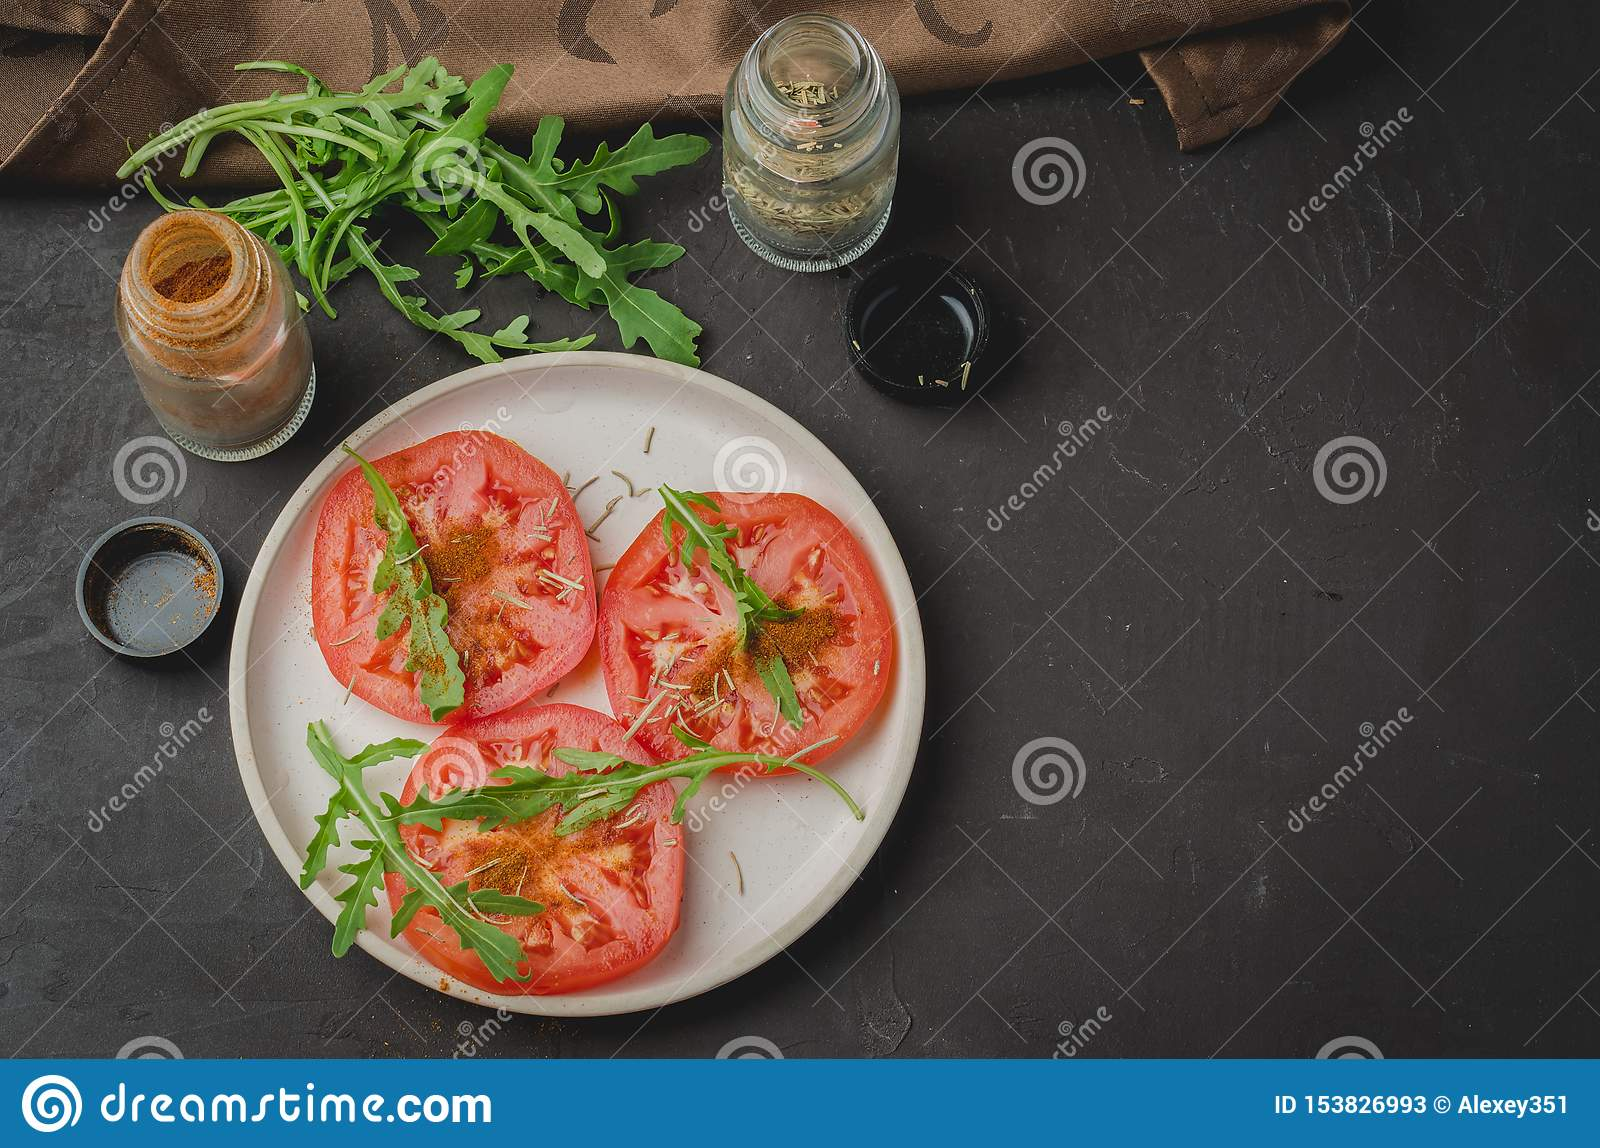 Sliced tomatoes and arugula spices salad. Healthy food salad on a dark background. Copy space and top view